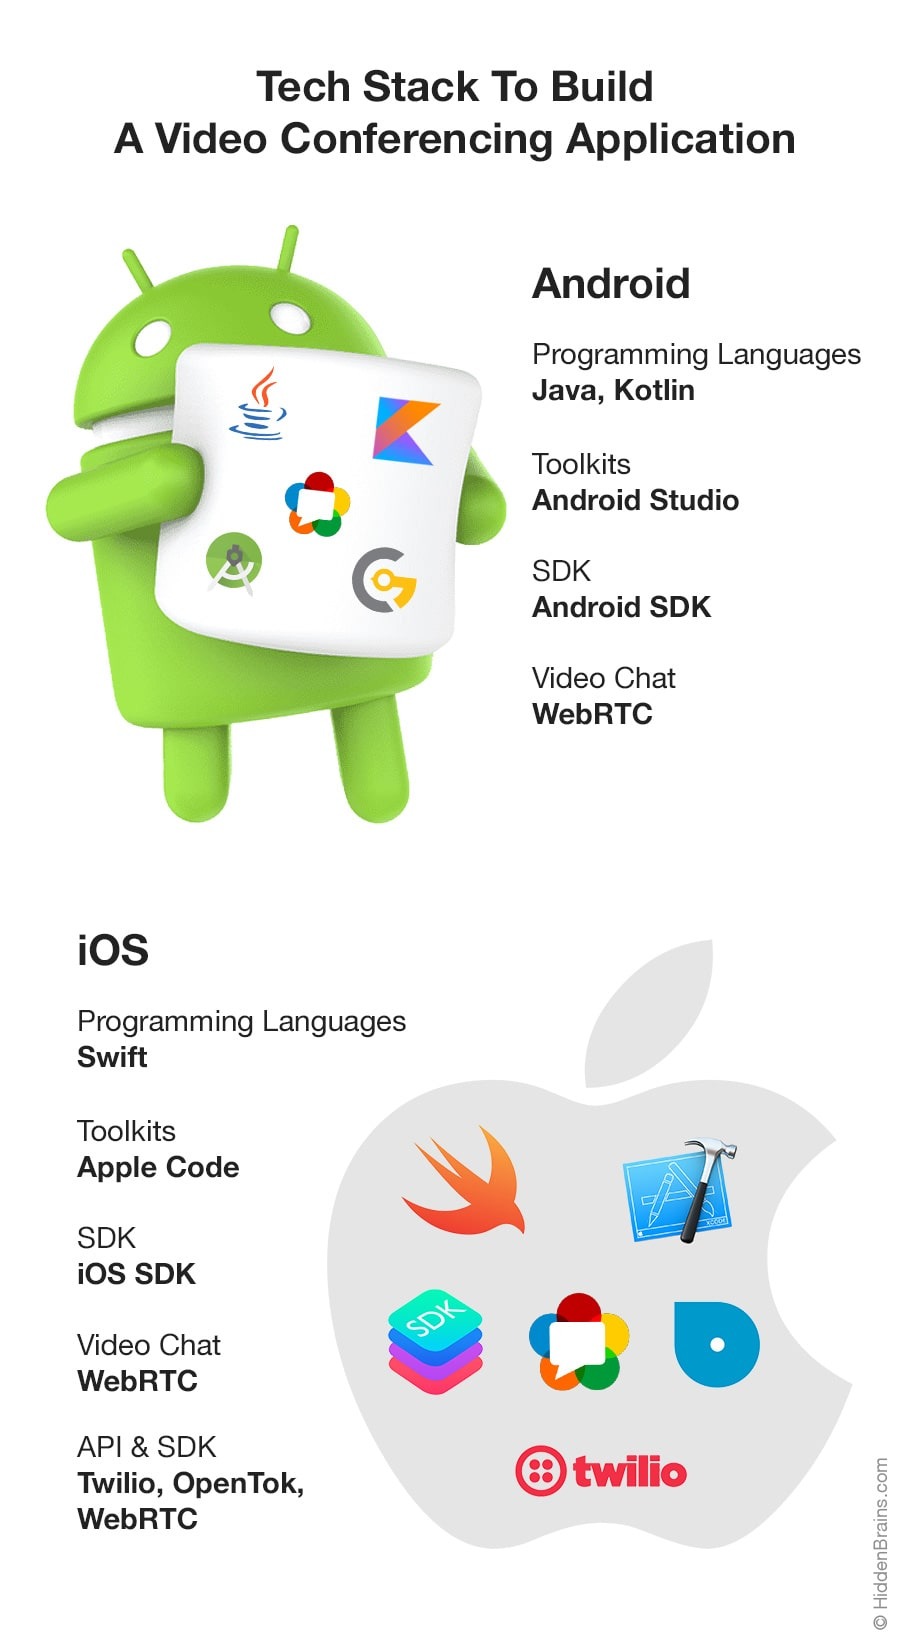 Video Conferencing App Tech Stack Infogrpahic